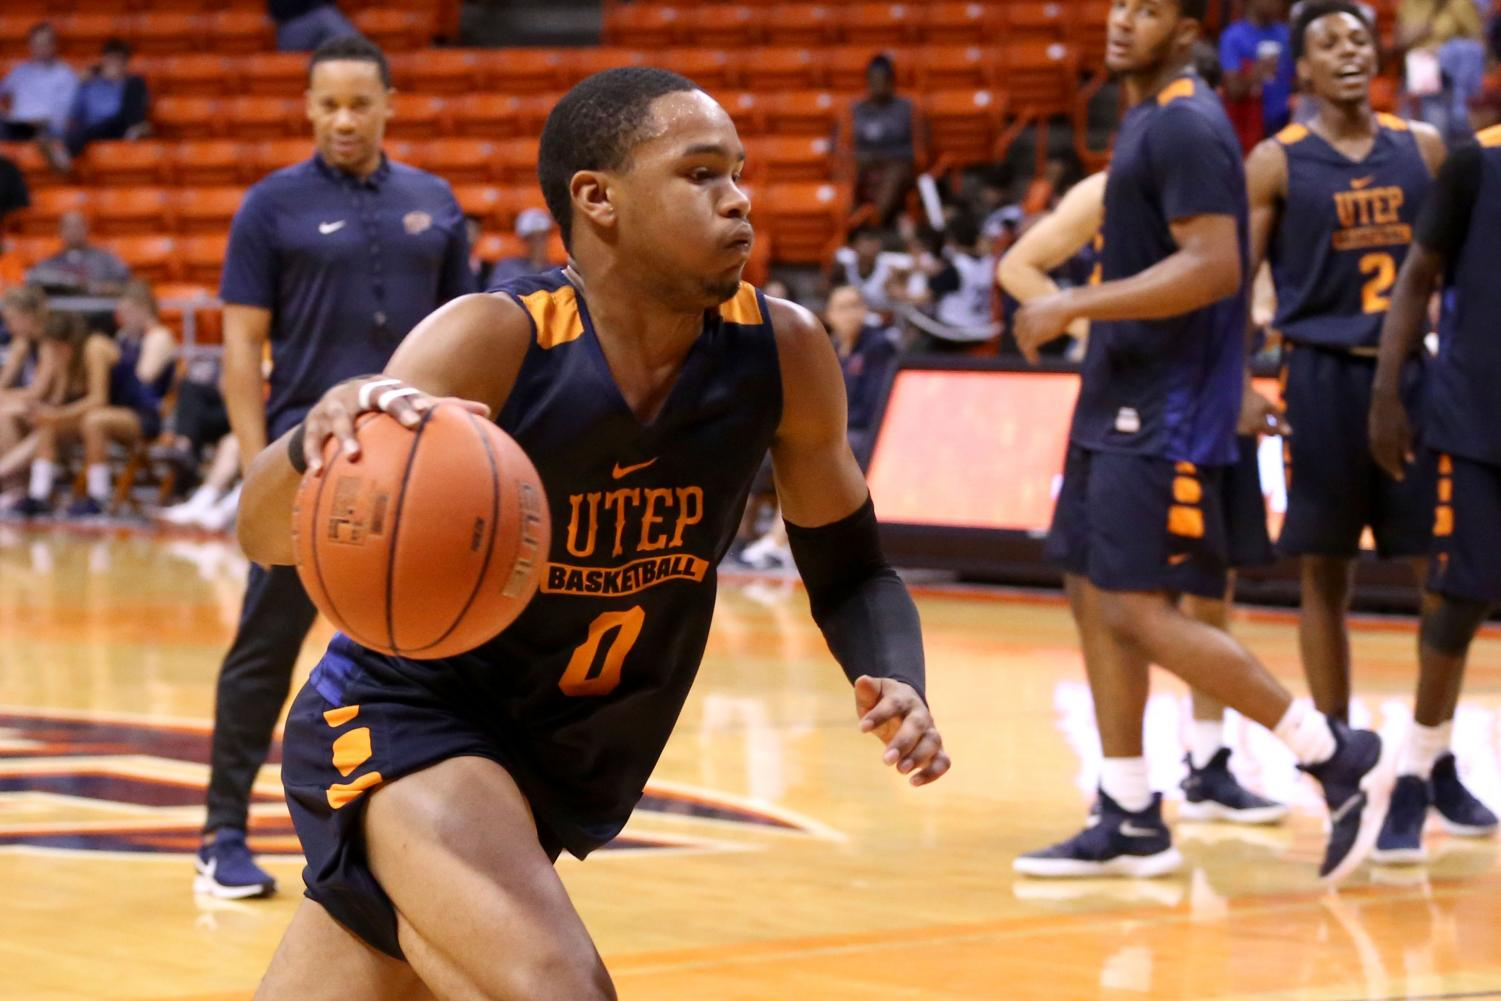 Freshman+guard+Nigal+Hawkins+drives+to+the+hole++during+the+basketball+pre+season+showcase+at+the+Don+Haskins+Center+on+Wednesday%2C+Oct.+10.+